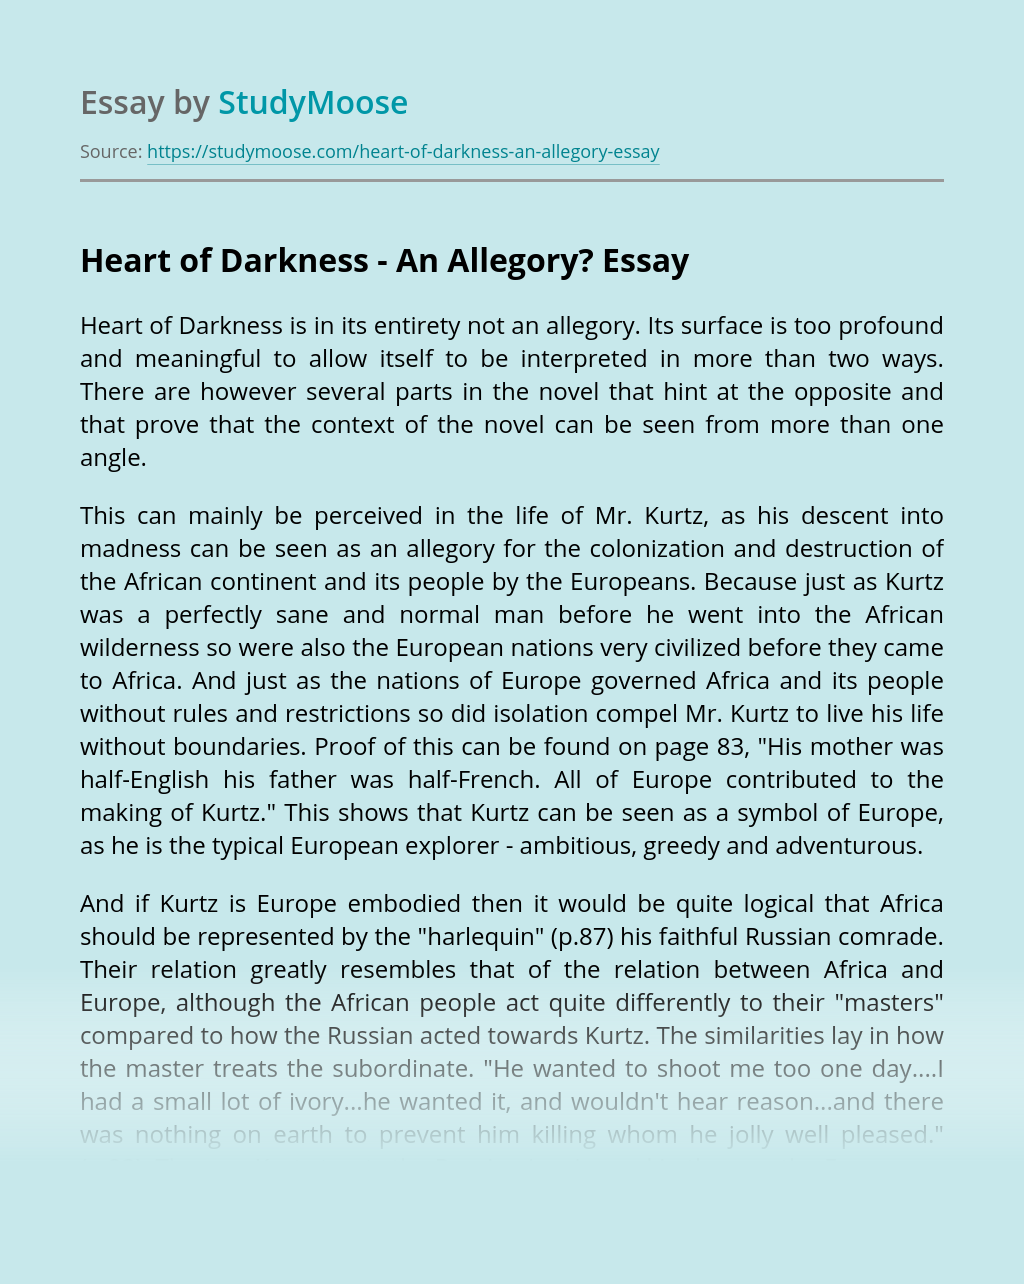 Heart of Darkness – An Allegory?